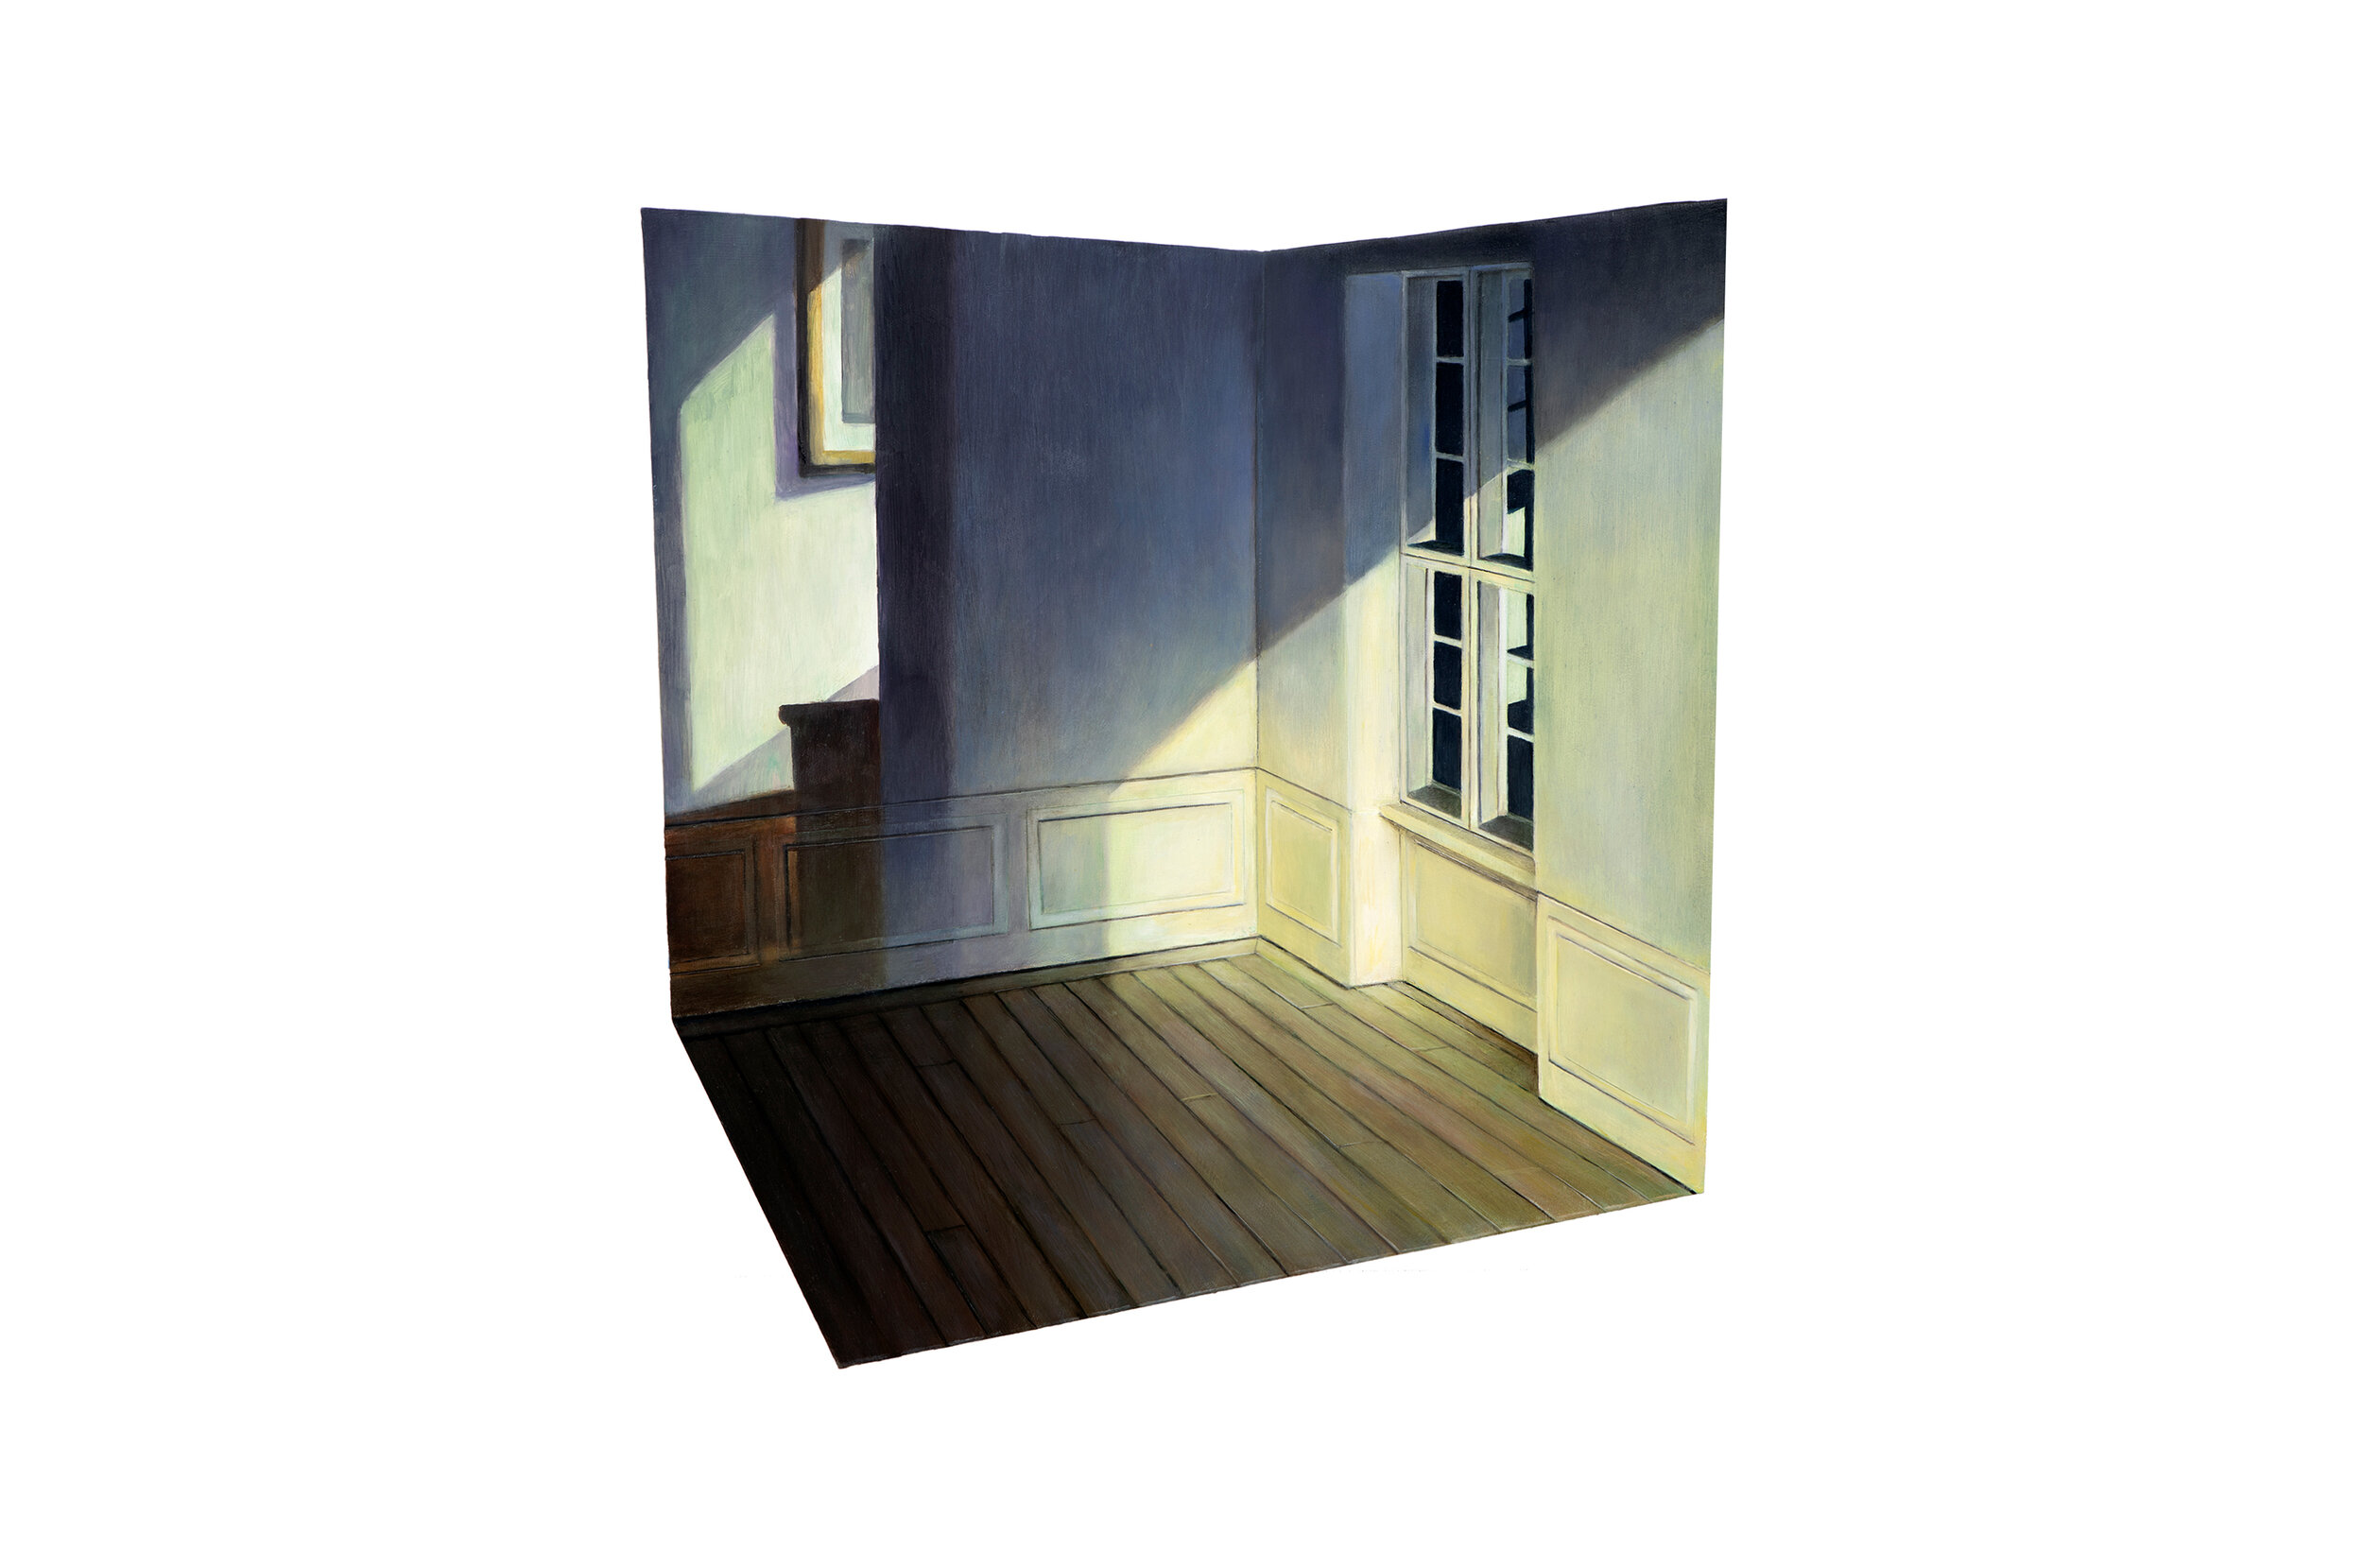 """Edward Hopper's """"Rooms by the Sear"""" Projected over Model of Hammershøi's Room    2019  Oil on shaped and raised relief panel  15 x 13.75  inches"""